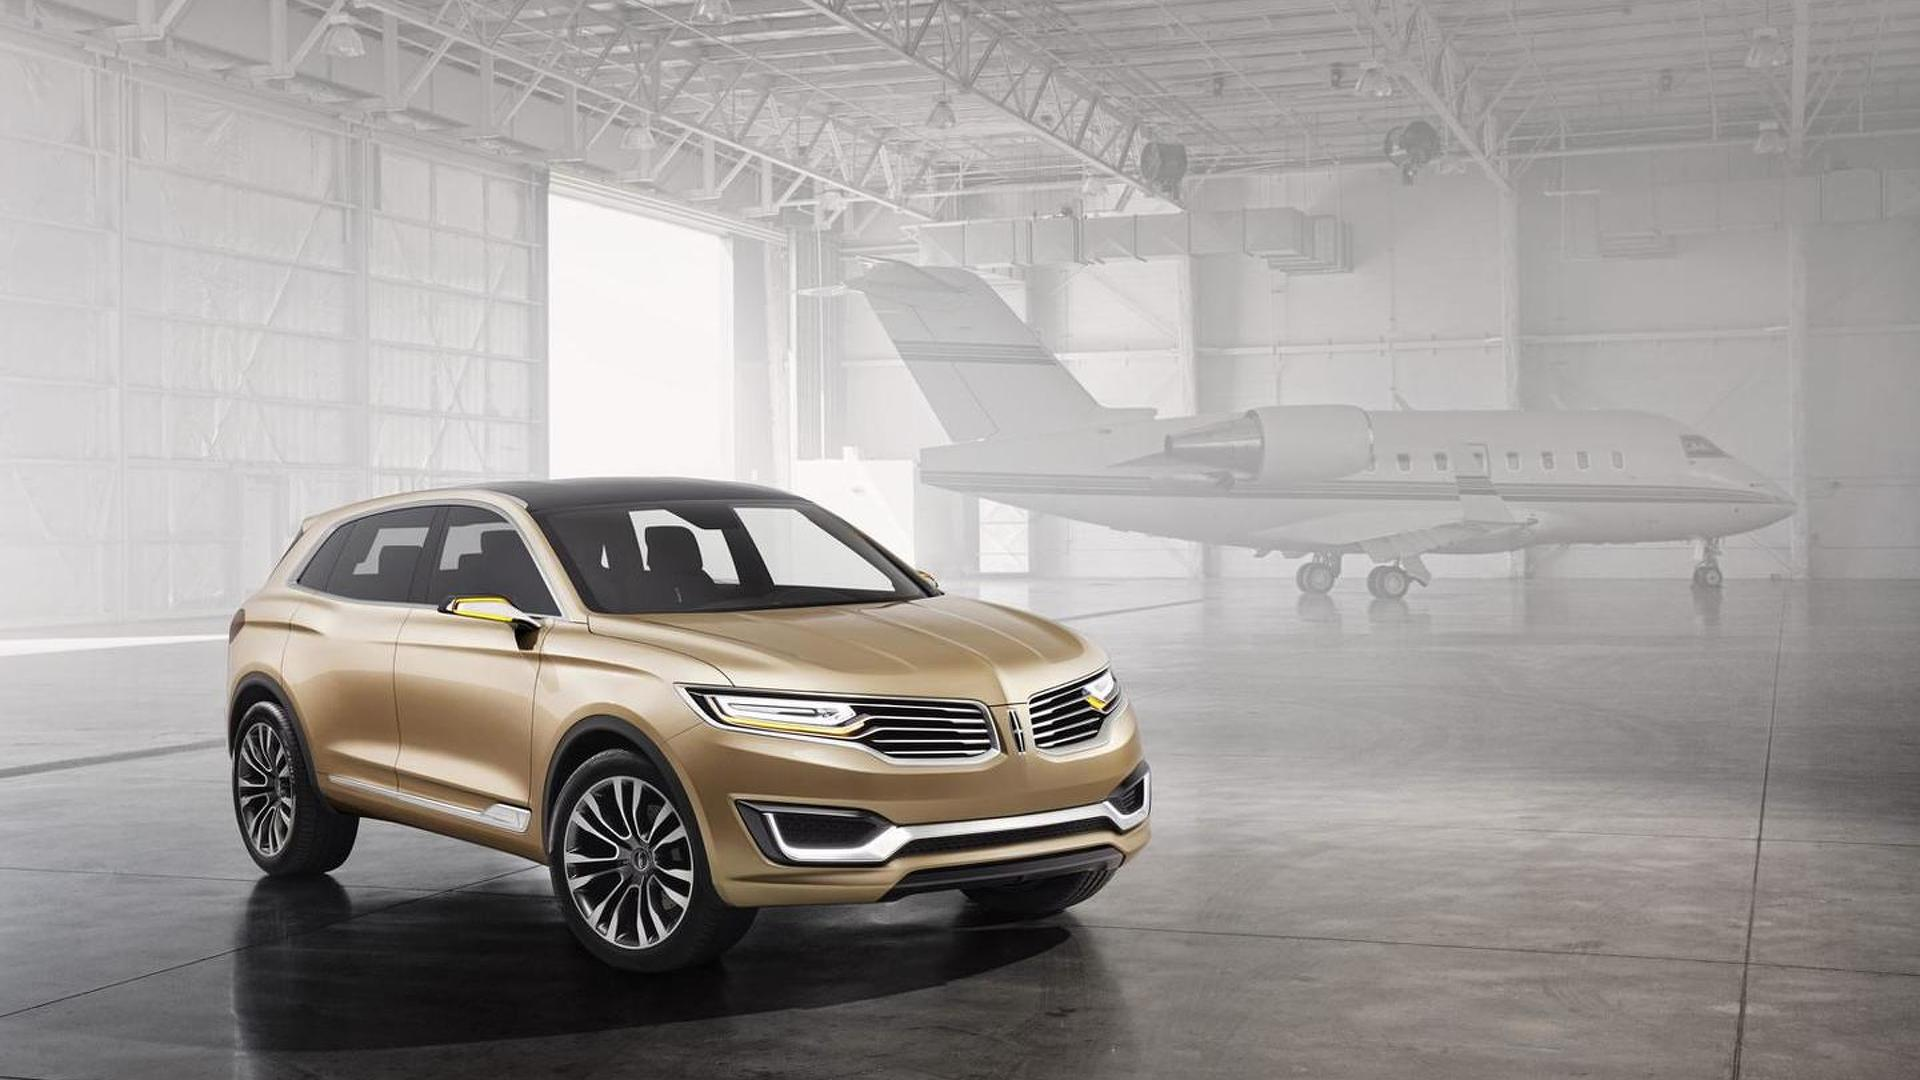 2020 Lincoln Mkx At Beijing Motor Show Picture